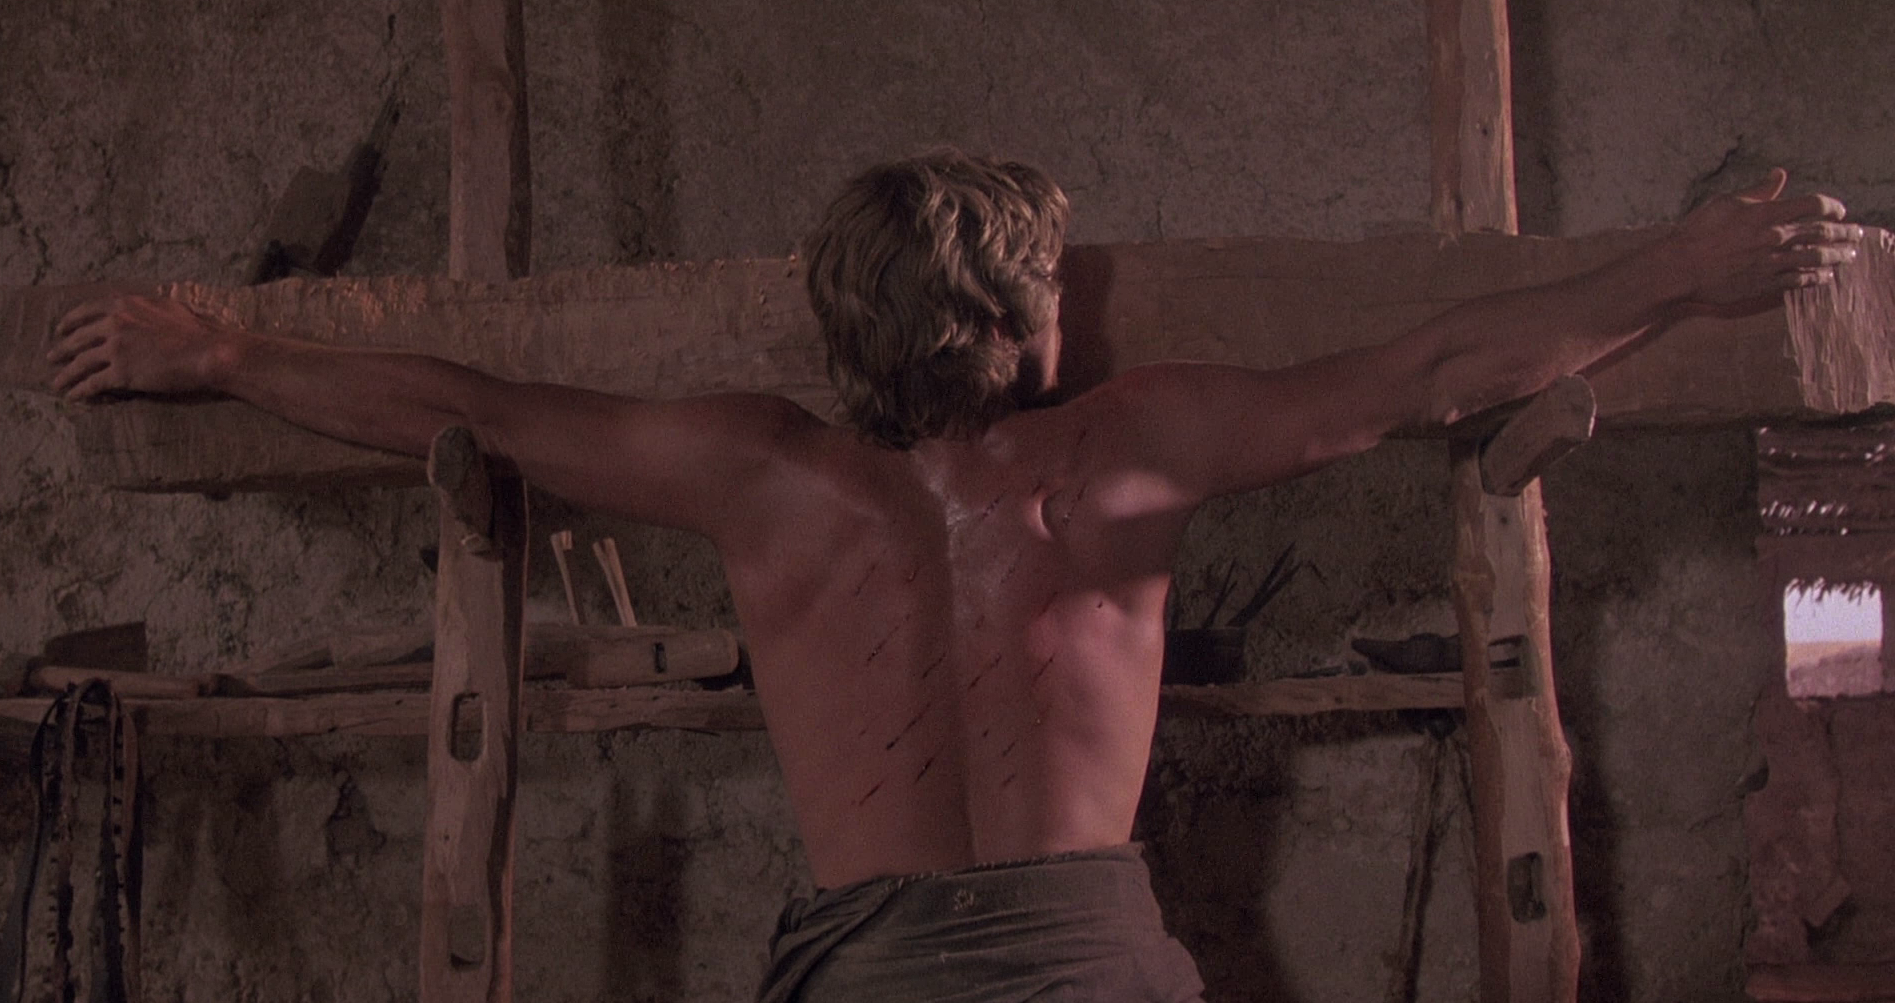 Impressing oneself on the image:  Life Lessons  (1989) and  The Last Temptation of Christ  (1988)